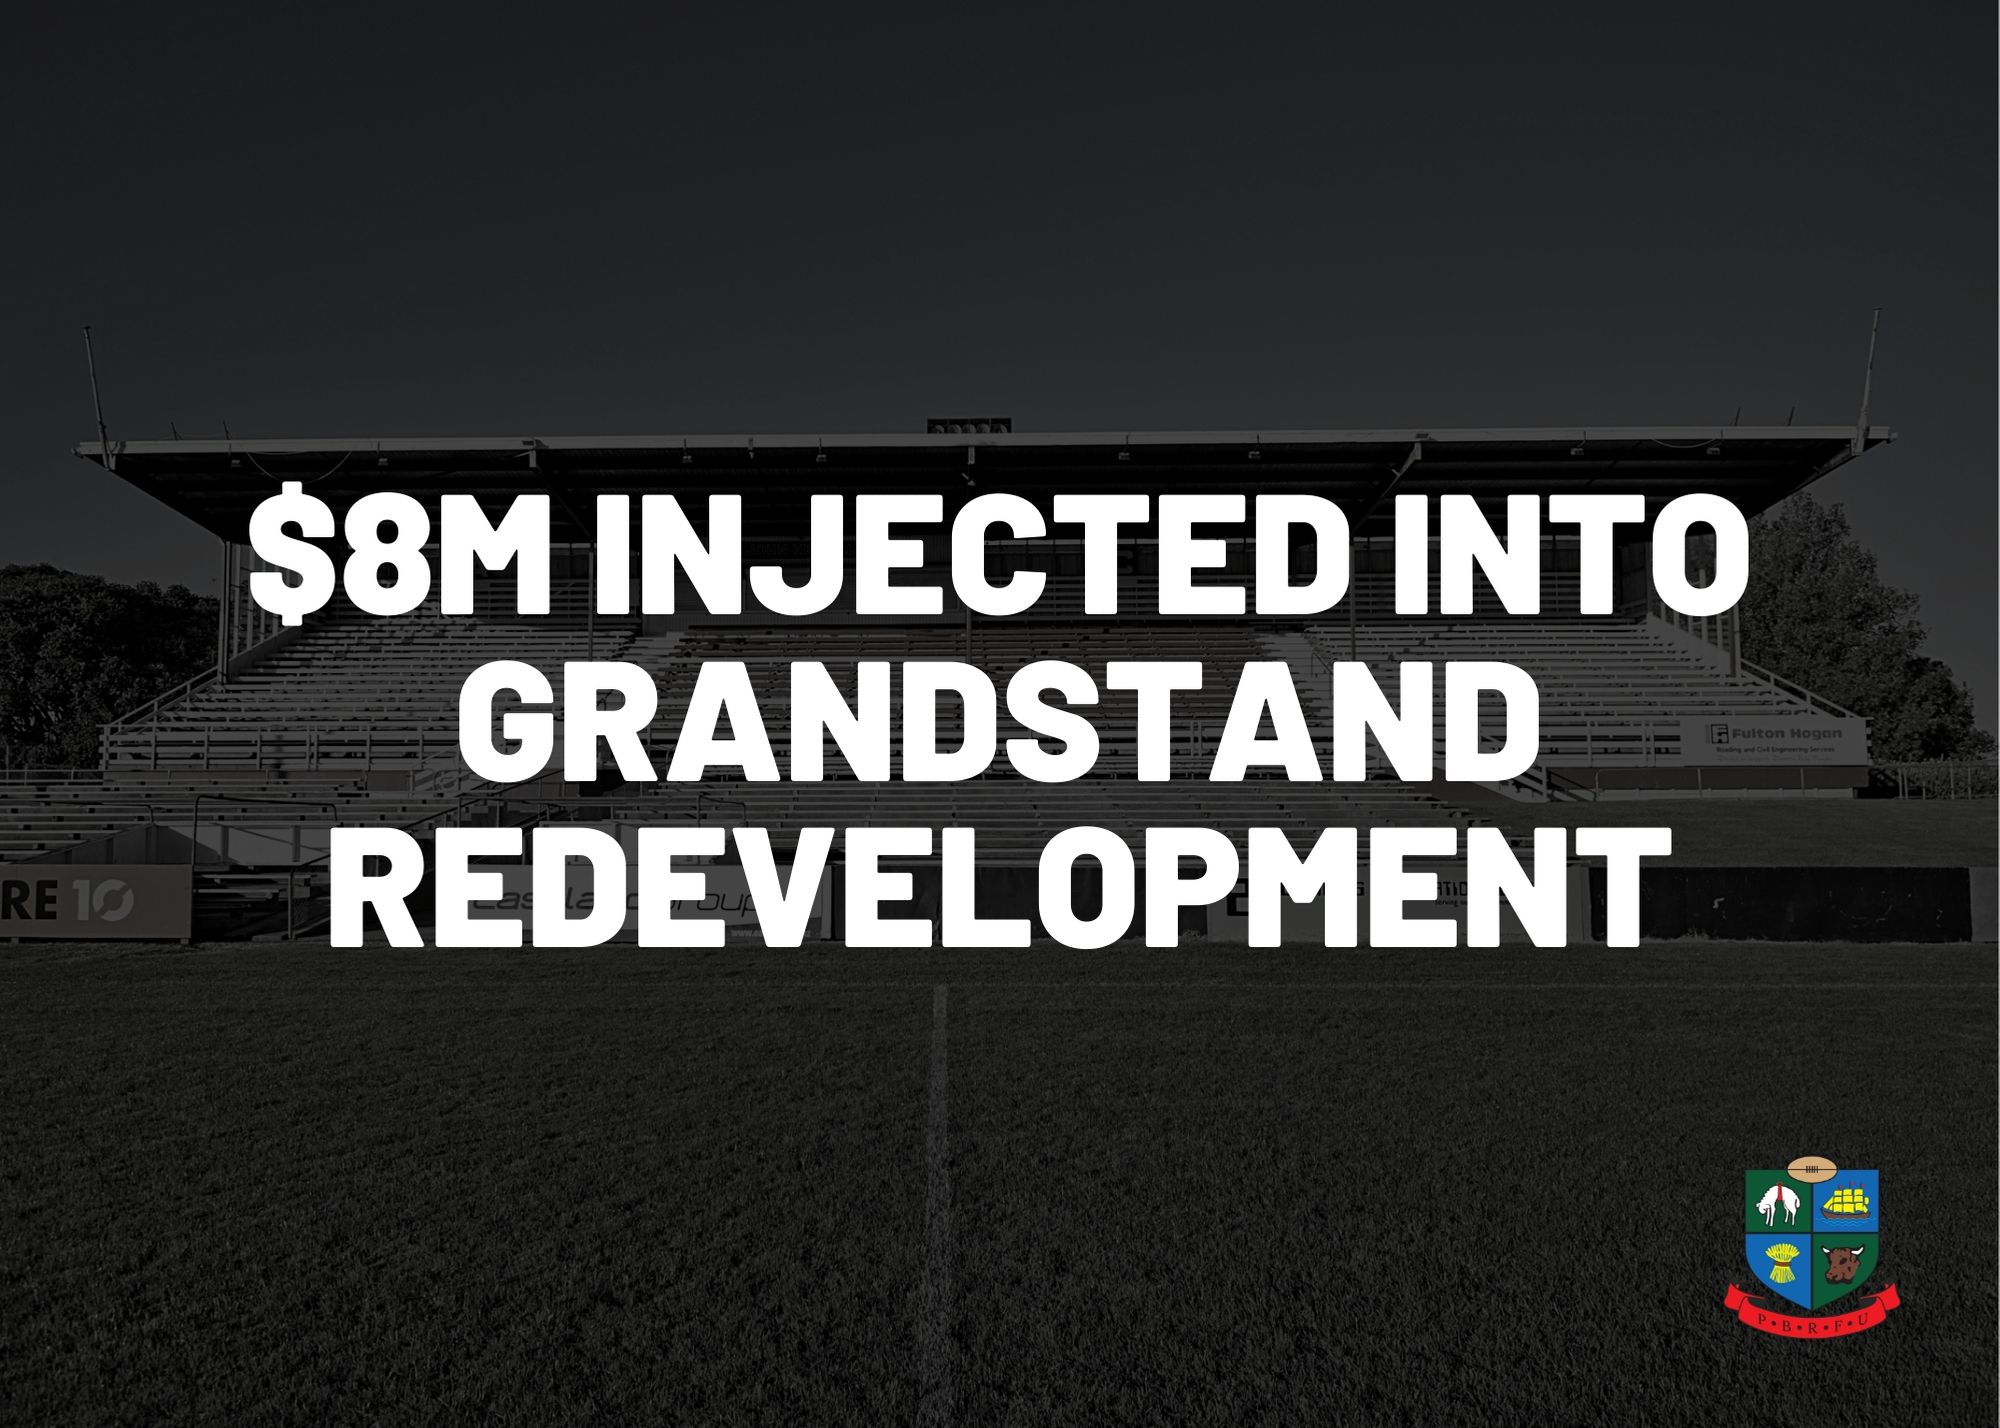 $8m injected into grandstand redevelopment